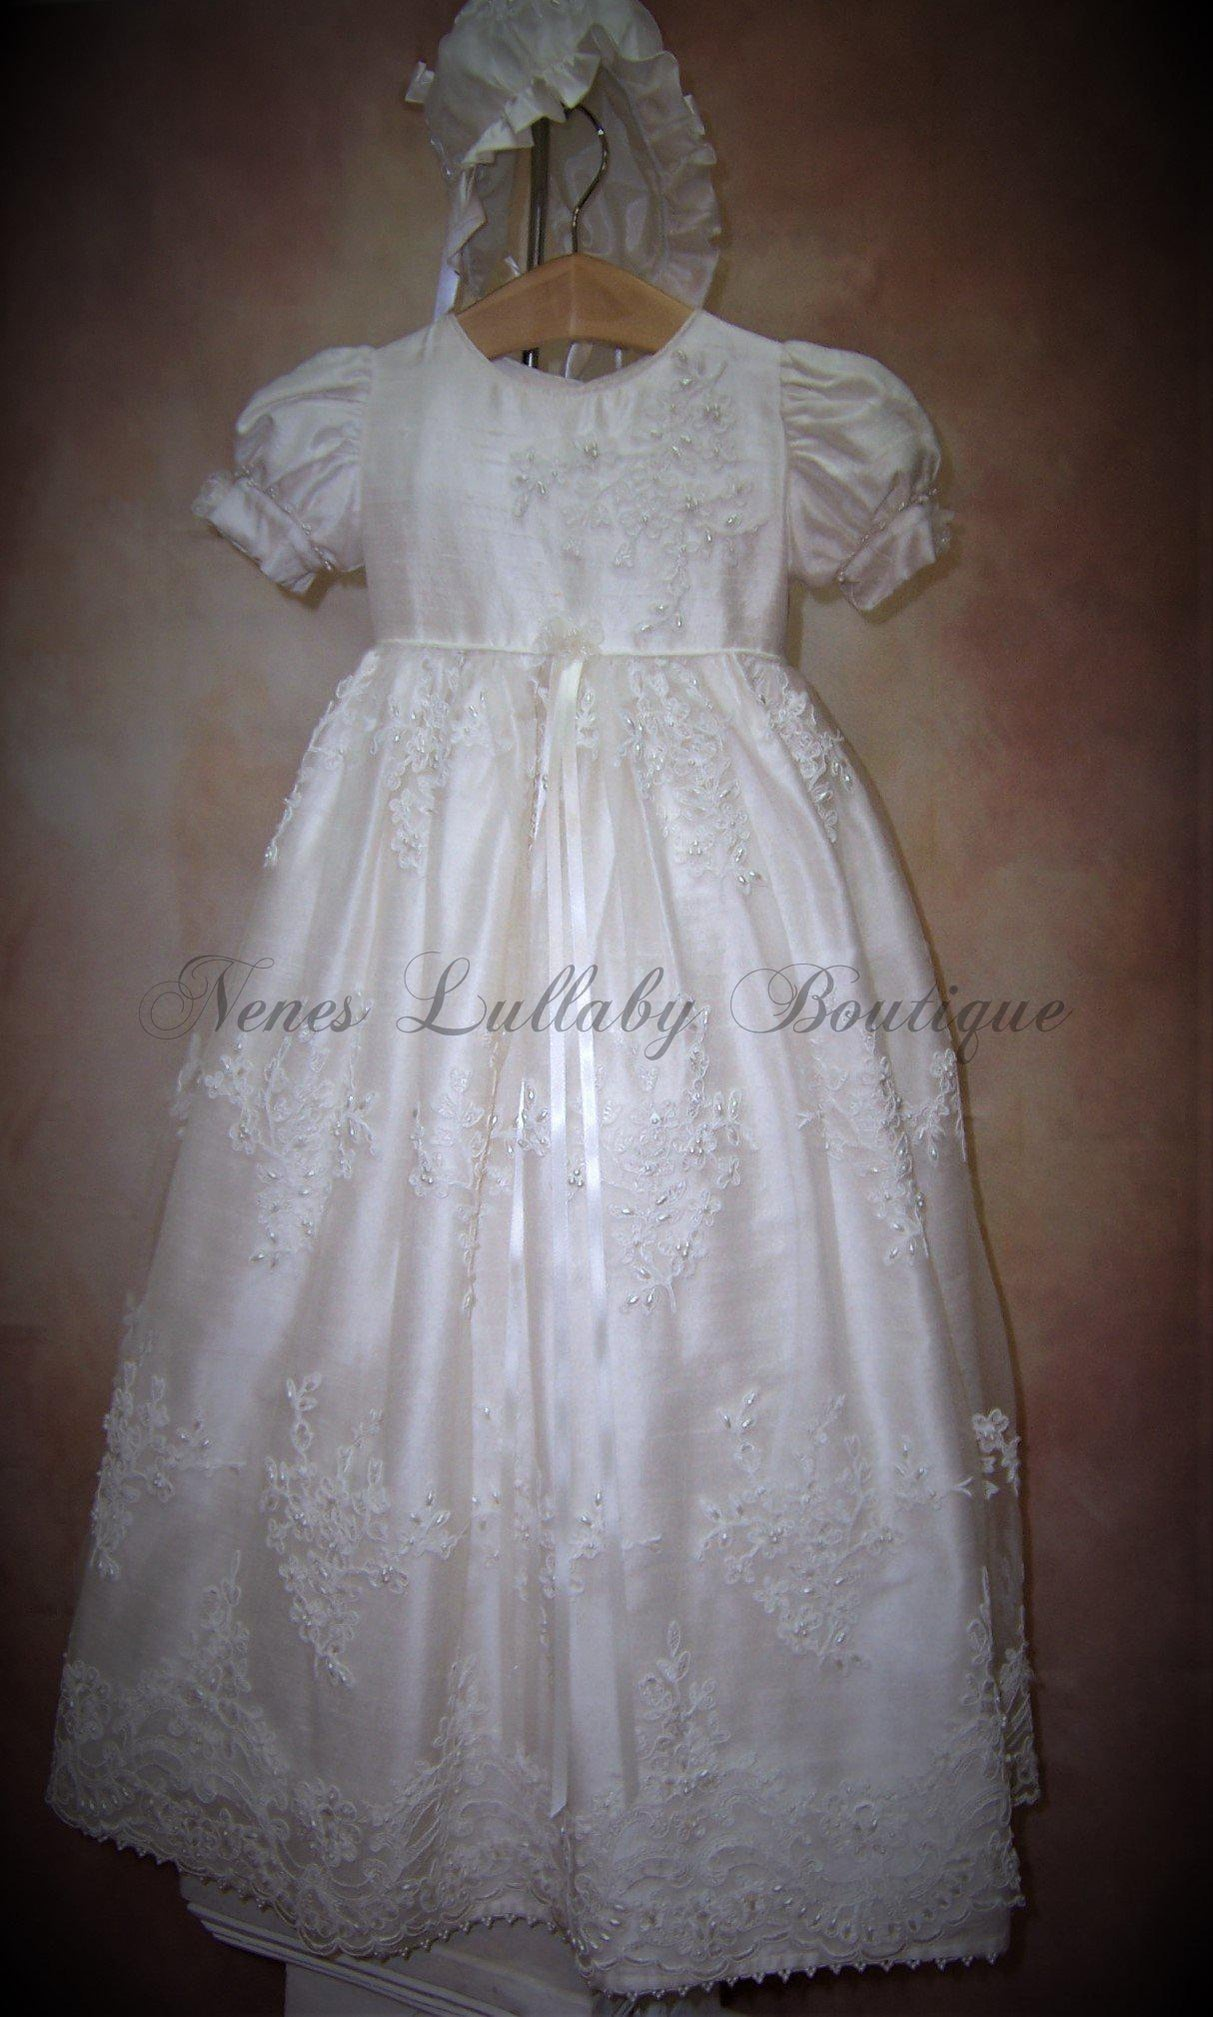 Piccolo Bacio Girls Christening gown Katrina - Nenes Lullaby Boutique Inc